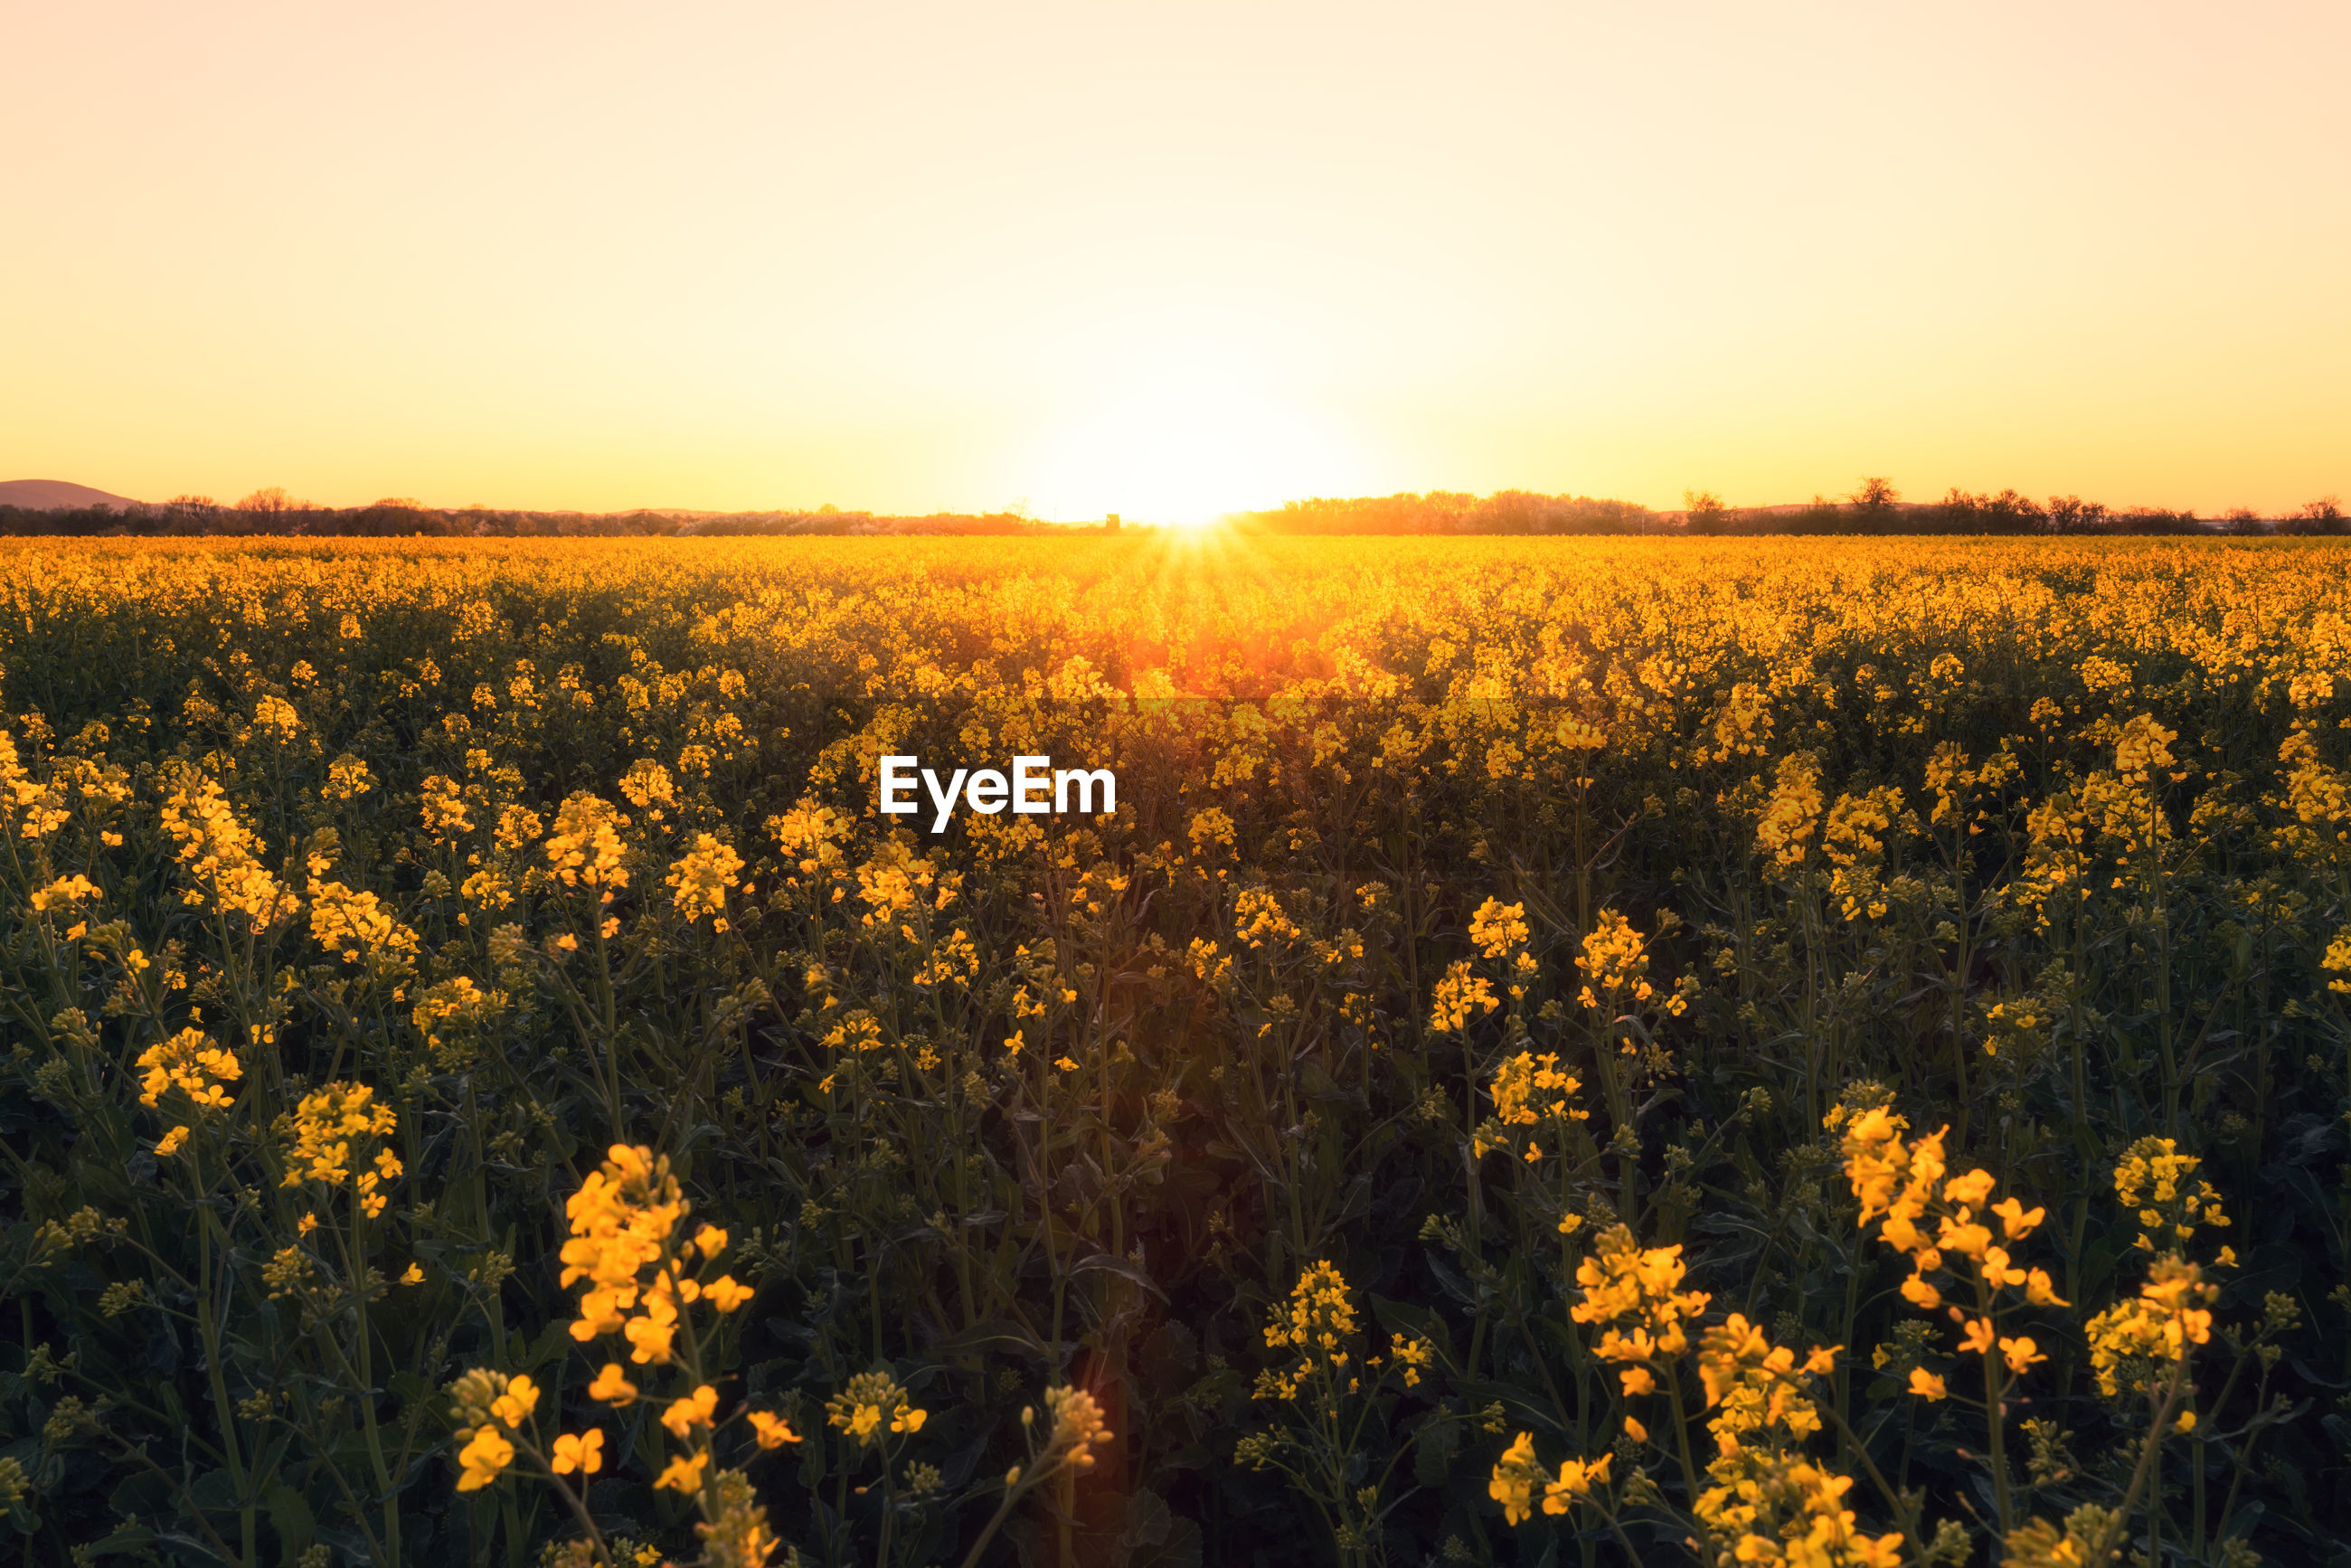 Scenic view of yellow flower field against sky during sunset